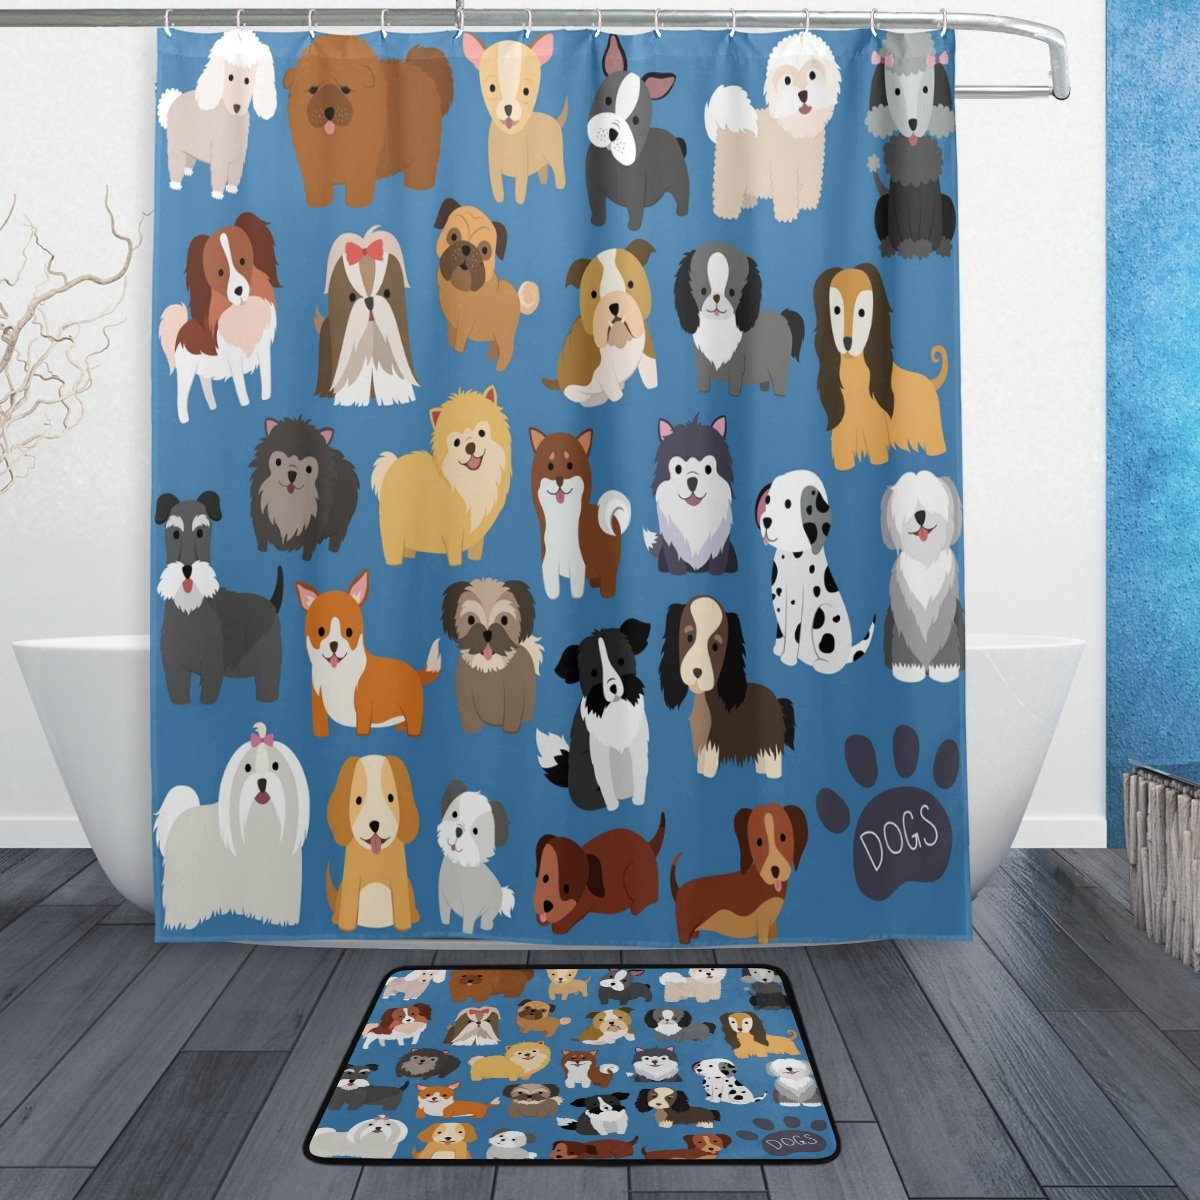 ALAZA Set of 2 Cute Animal Dog 60 X 72 Inches Shower Curtain and Mat Set, Lovely Puppy Dogs Waterproof Fabric Bathroom Curtain and Rug Set with Hooks by ALAZA